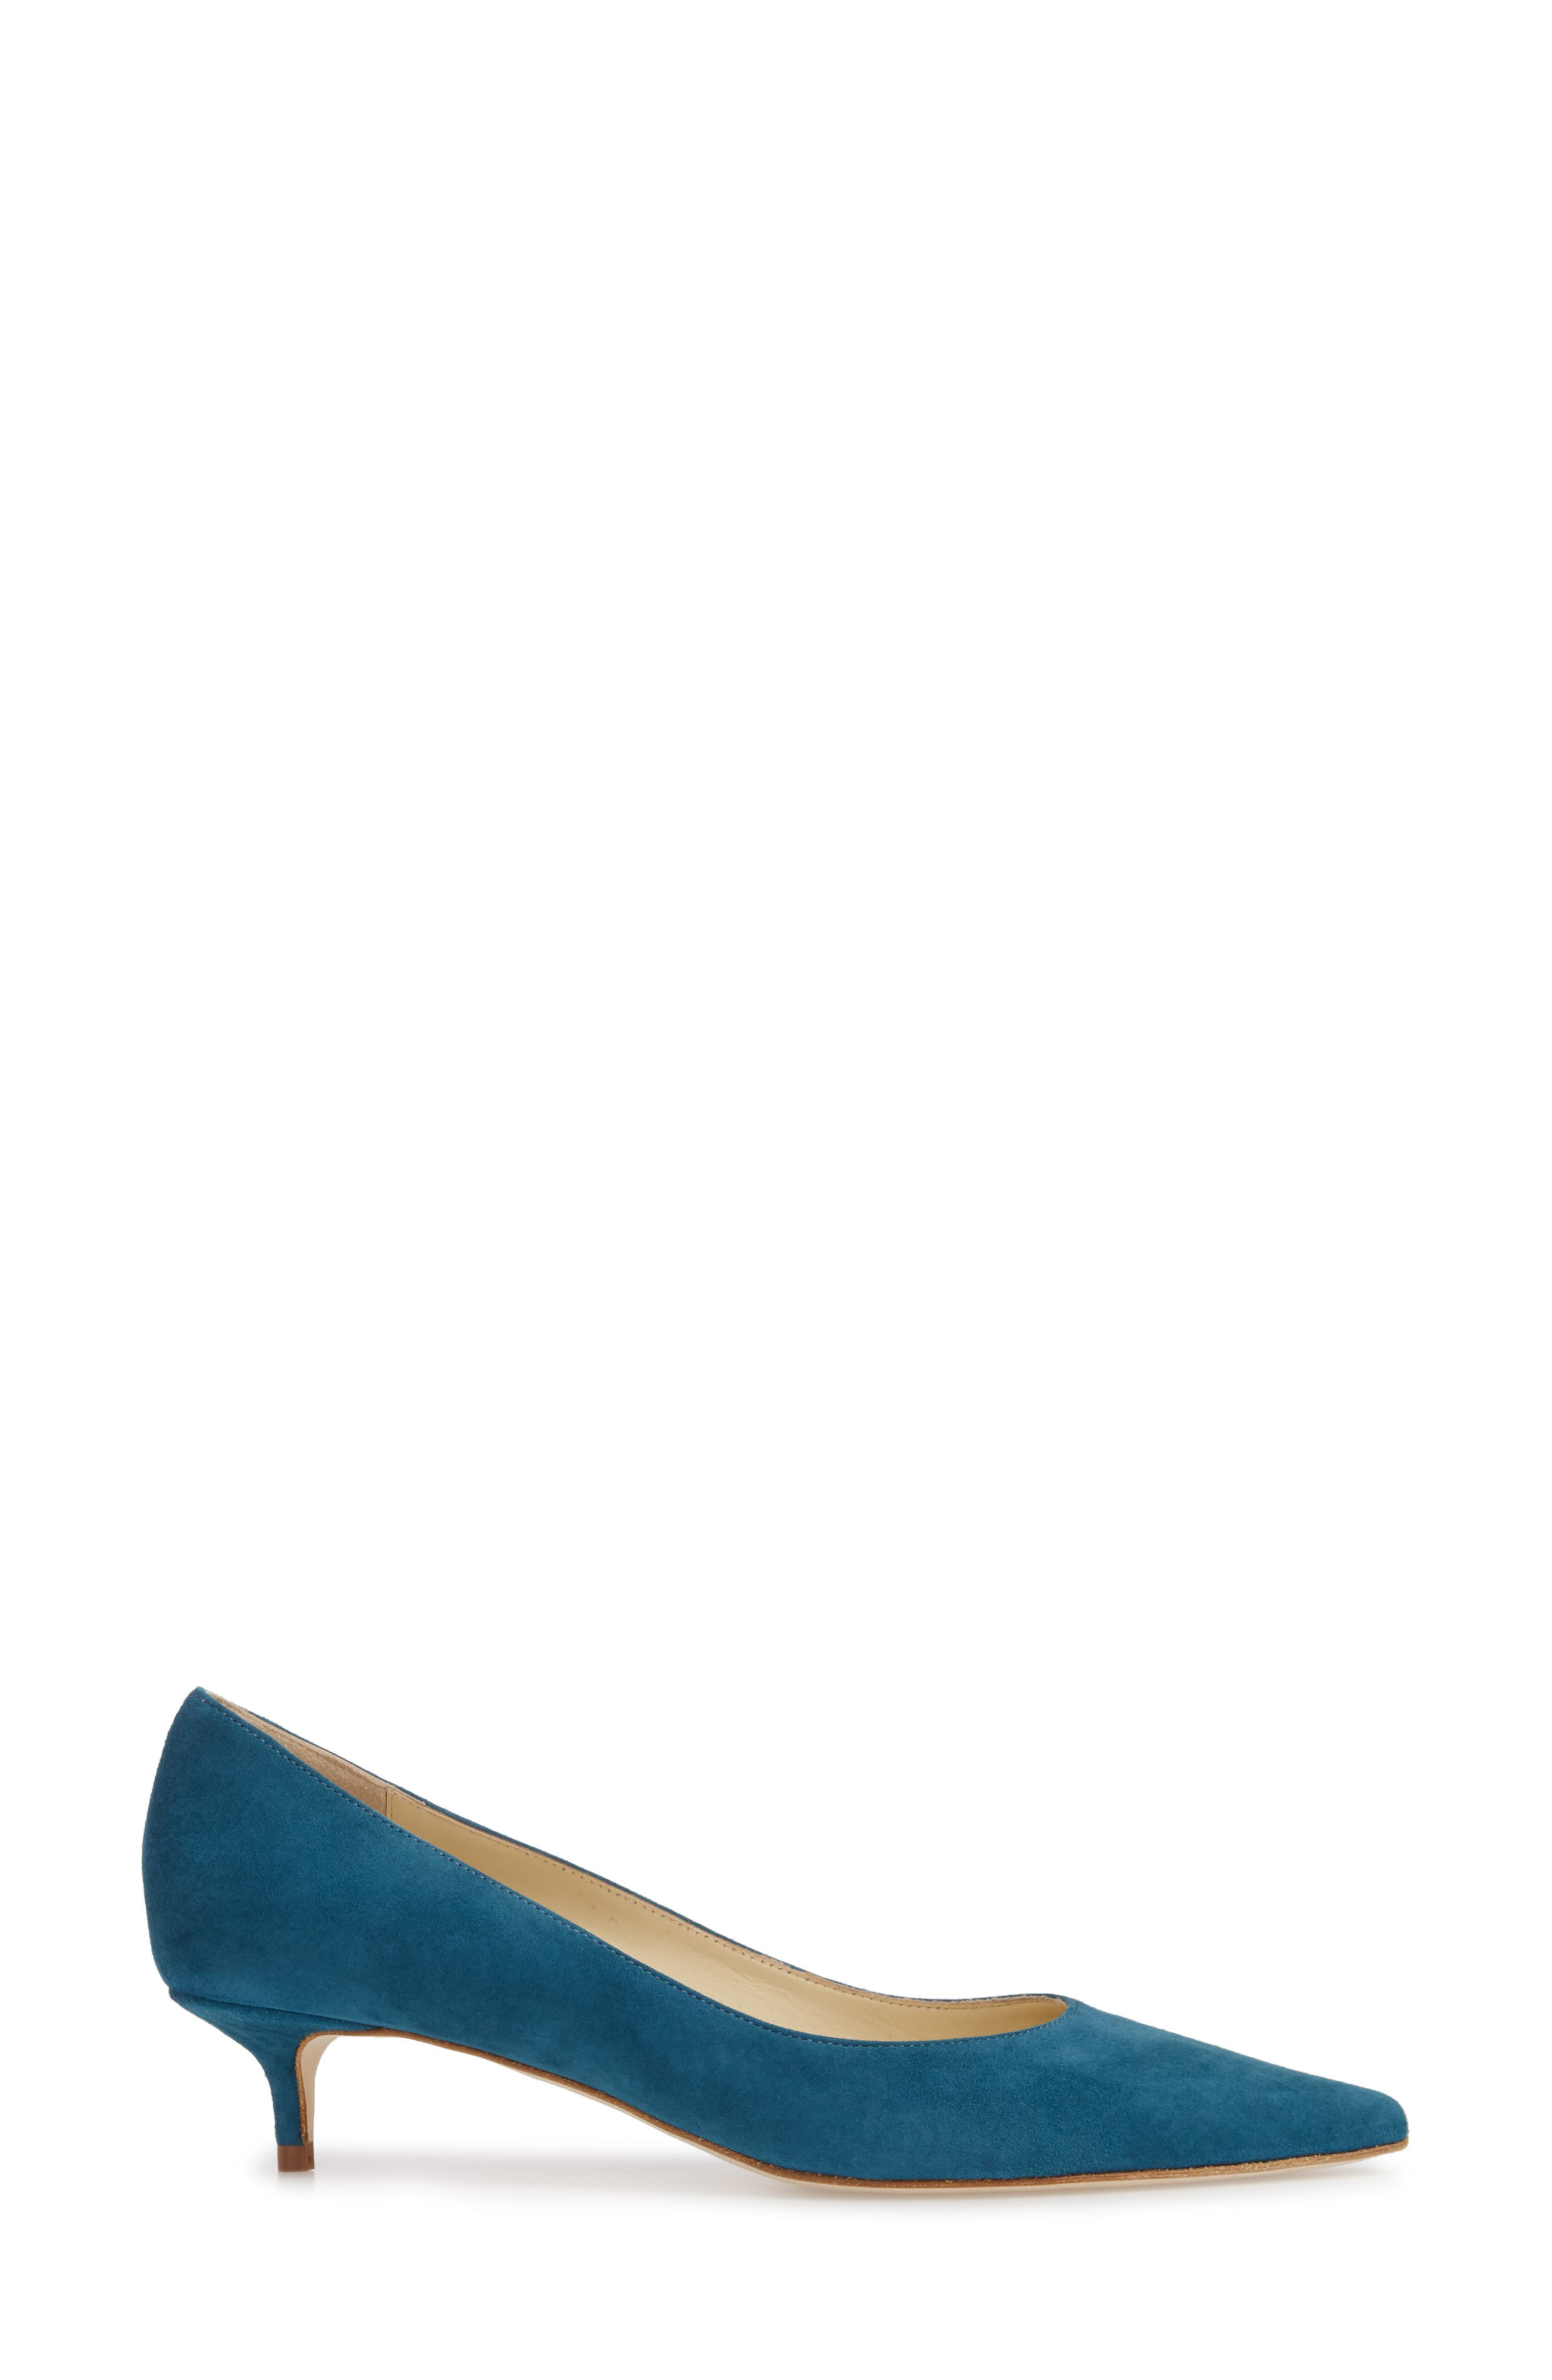 Butter Born Pointy Toe Pump,                             Alternate thumbnail 19, color,